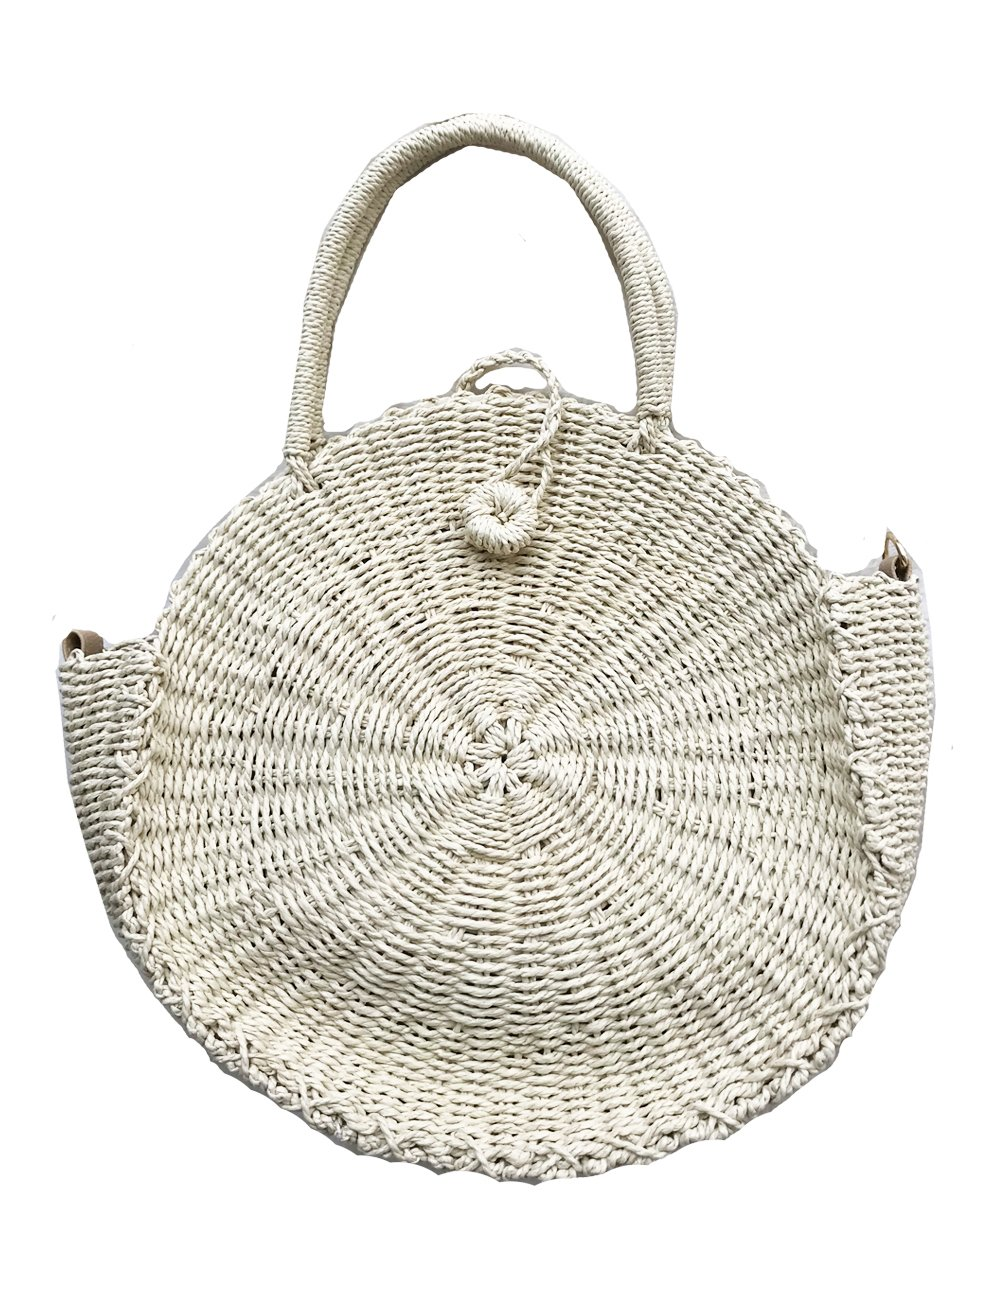 Straw Round Woven Tote Beach Bag